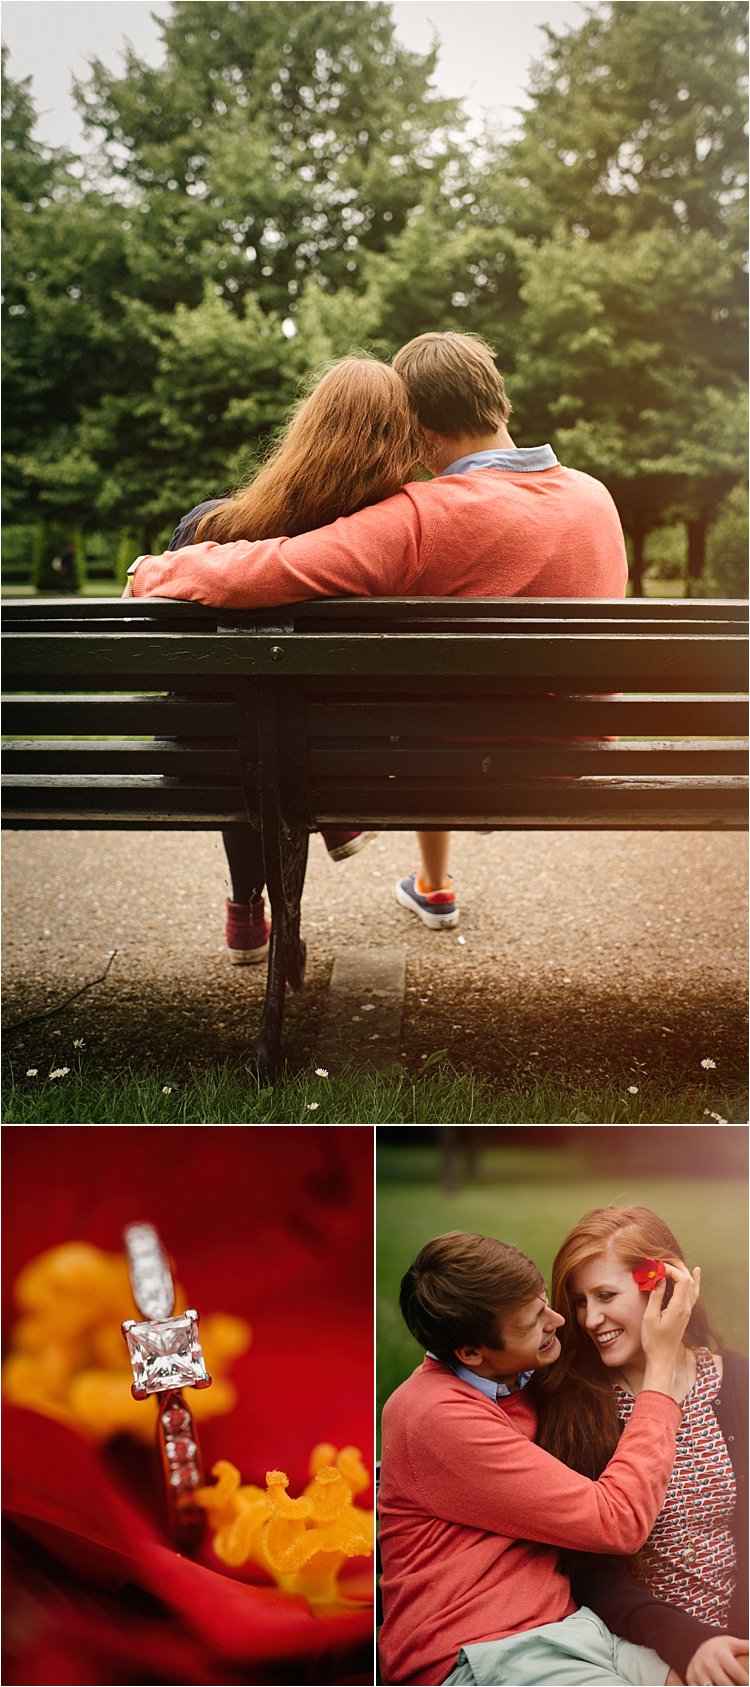 regents-park-engagement-photoshoot-london-wedding-photographer-lily-sawyer-photo